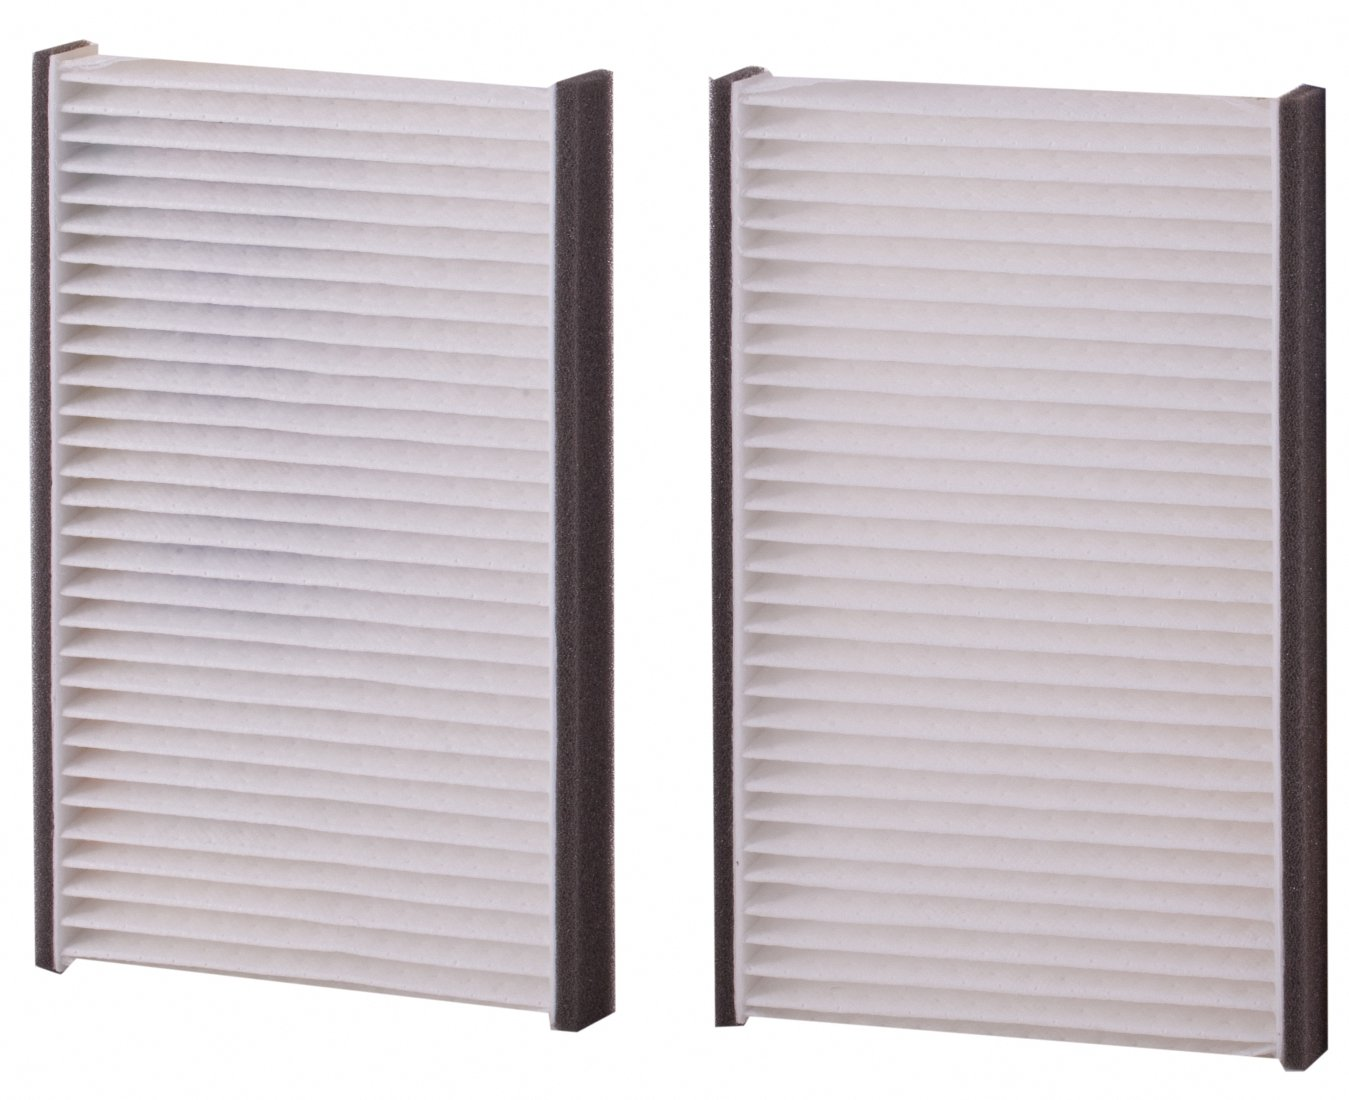 PG Cabin Air Filter PC5425 Fits 1996-04 Acura RL